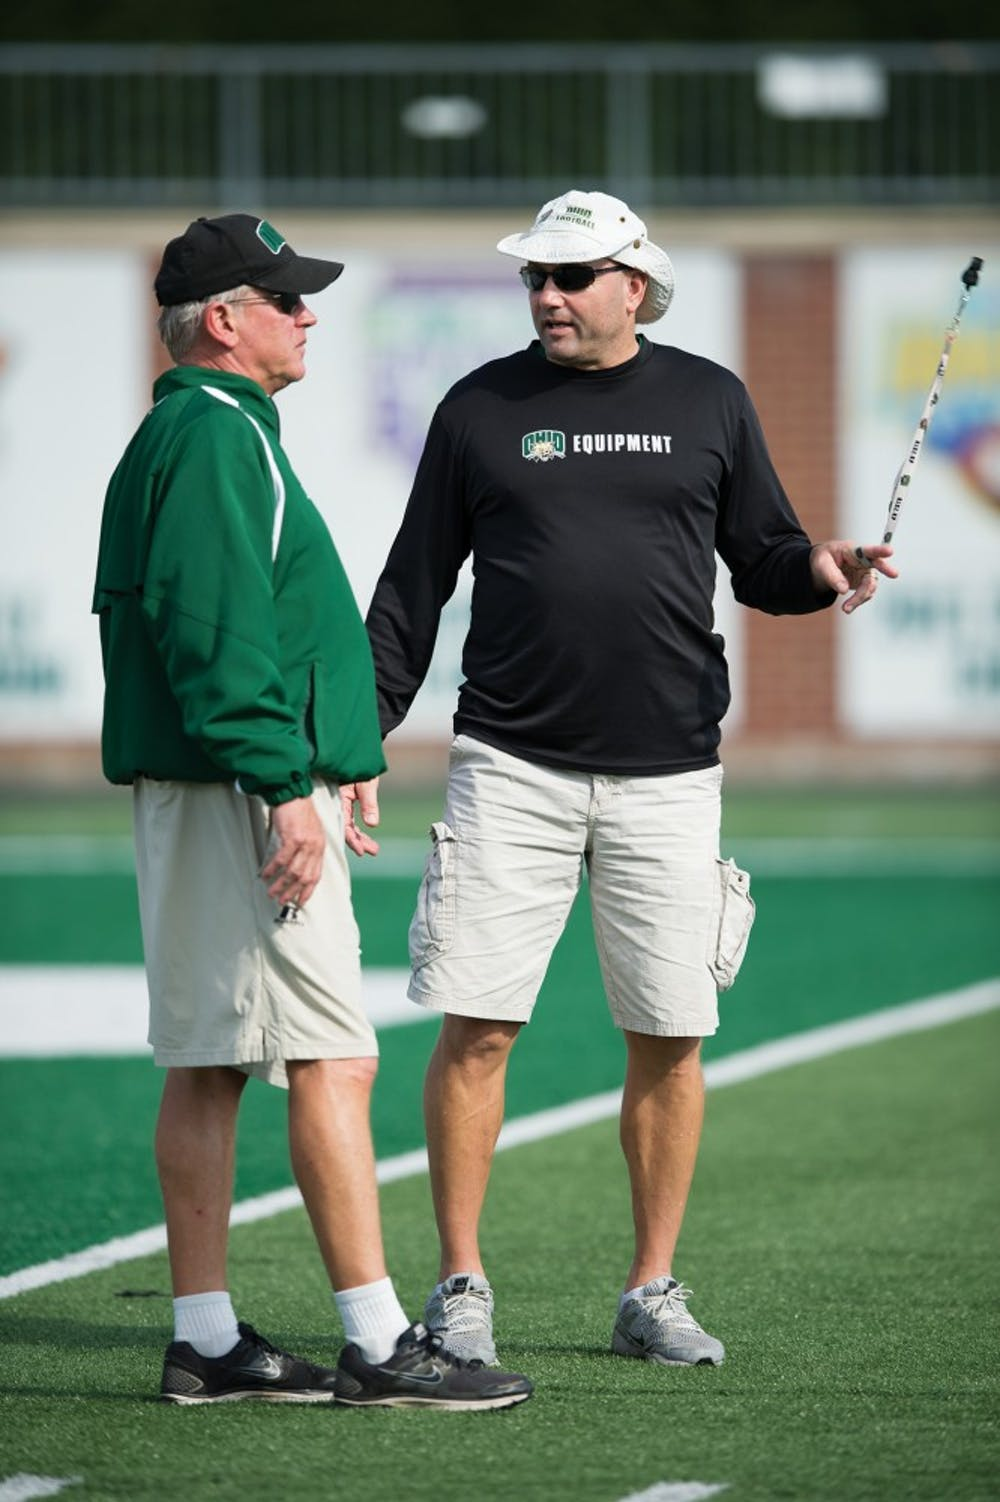 Football: Long-time coordinators are key to Ohio's championship chances